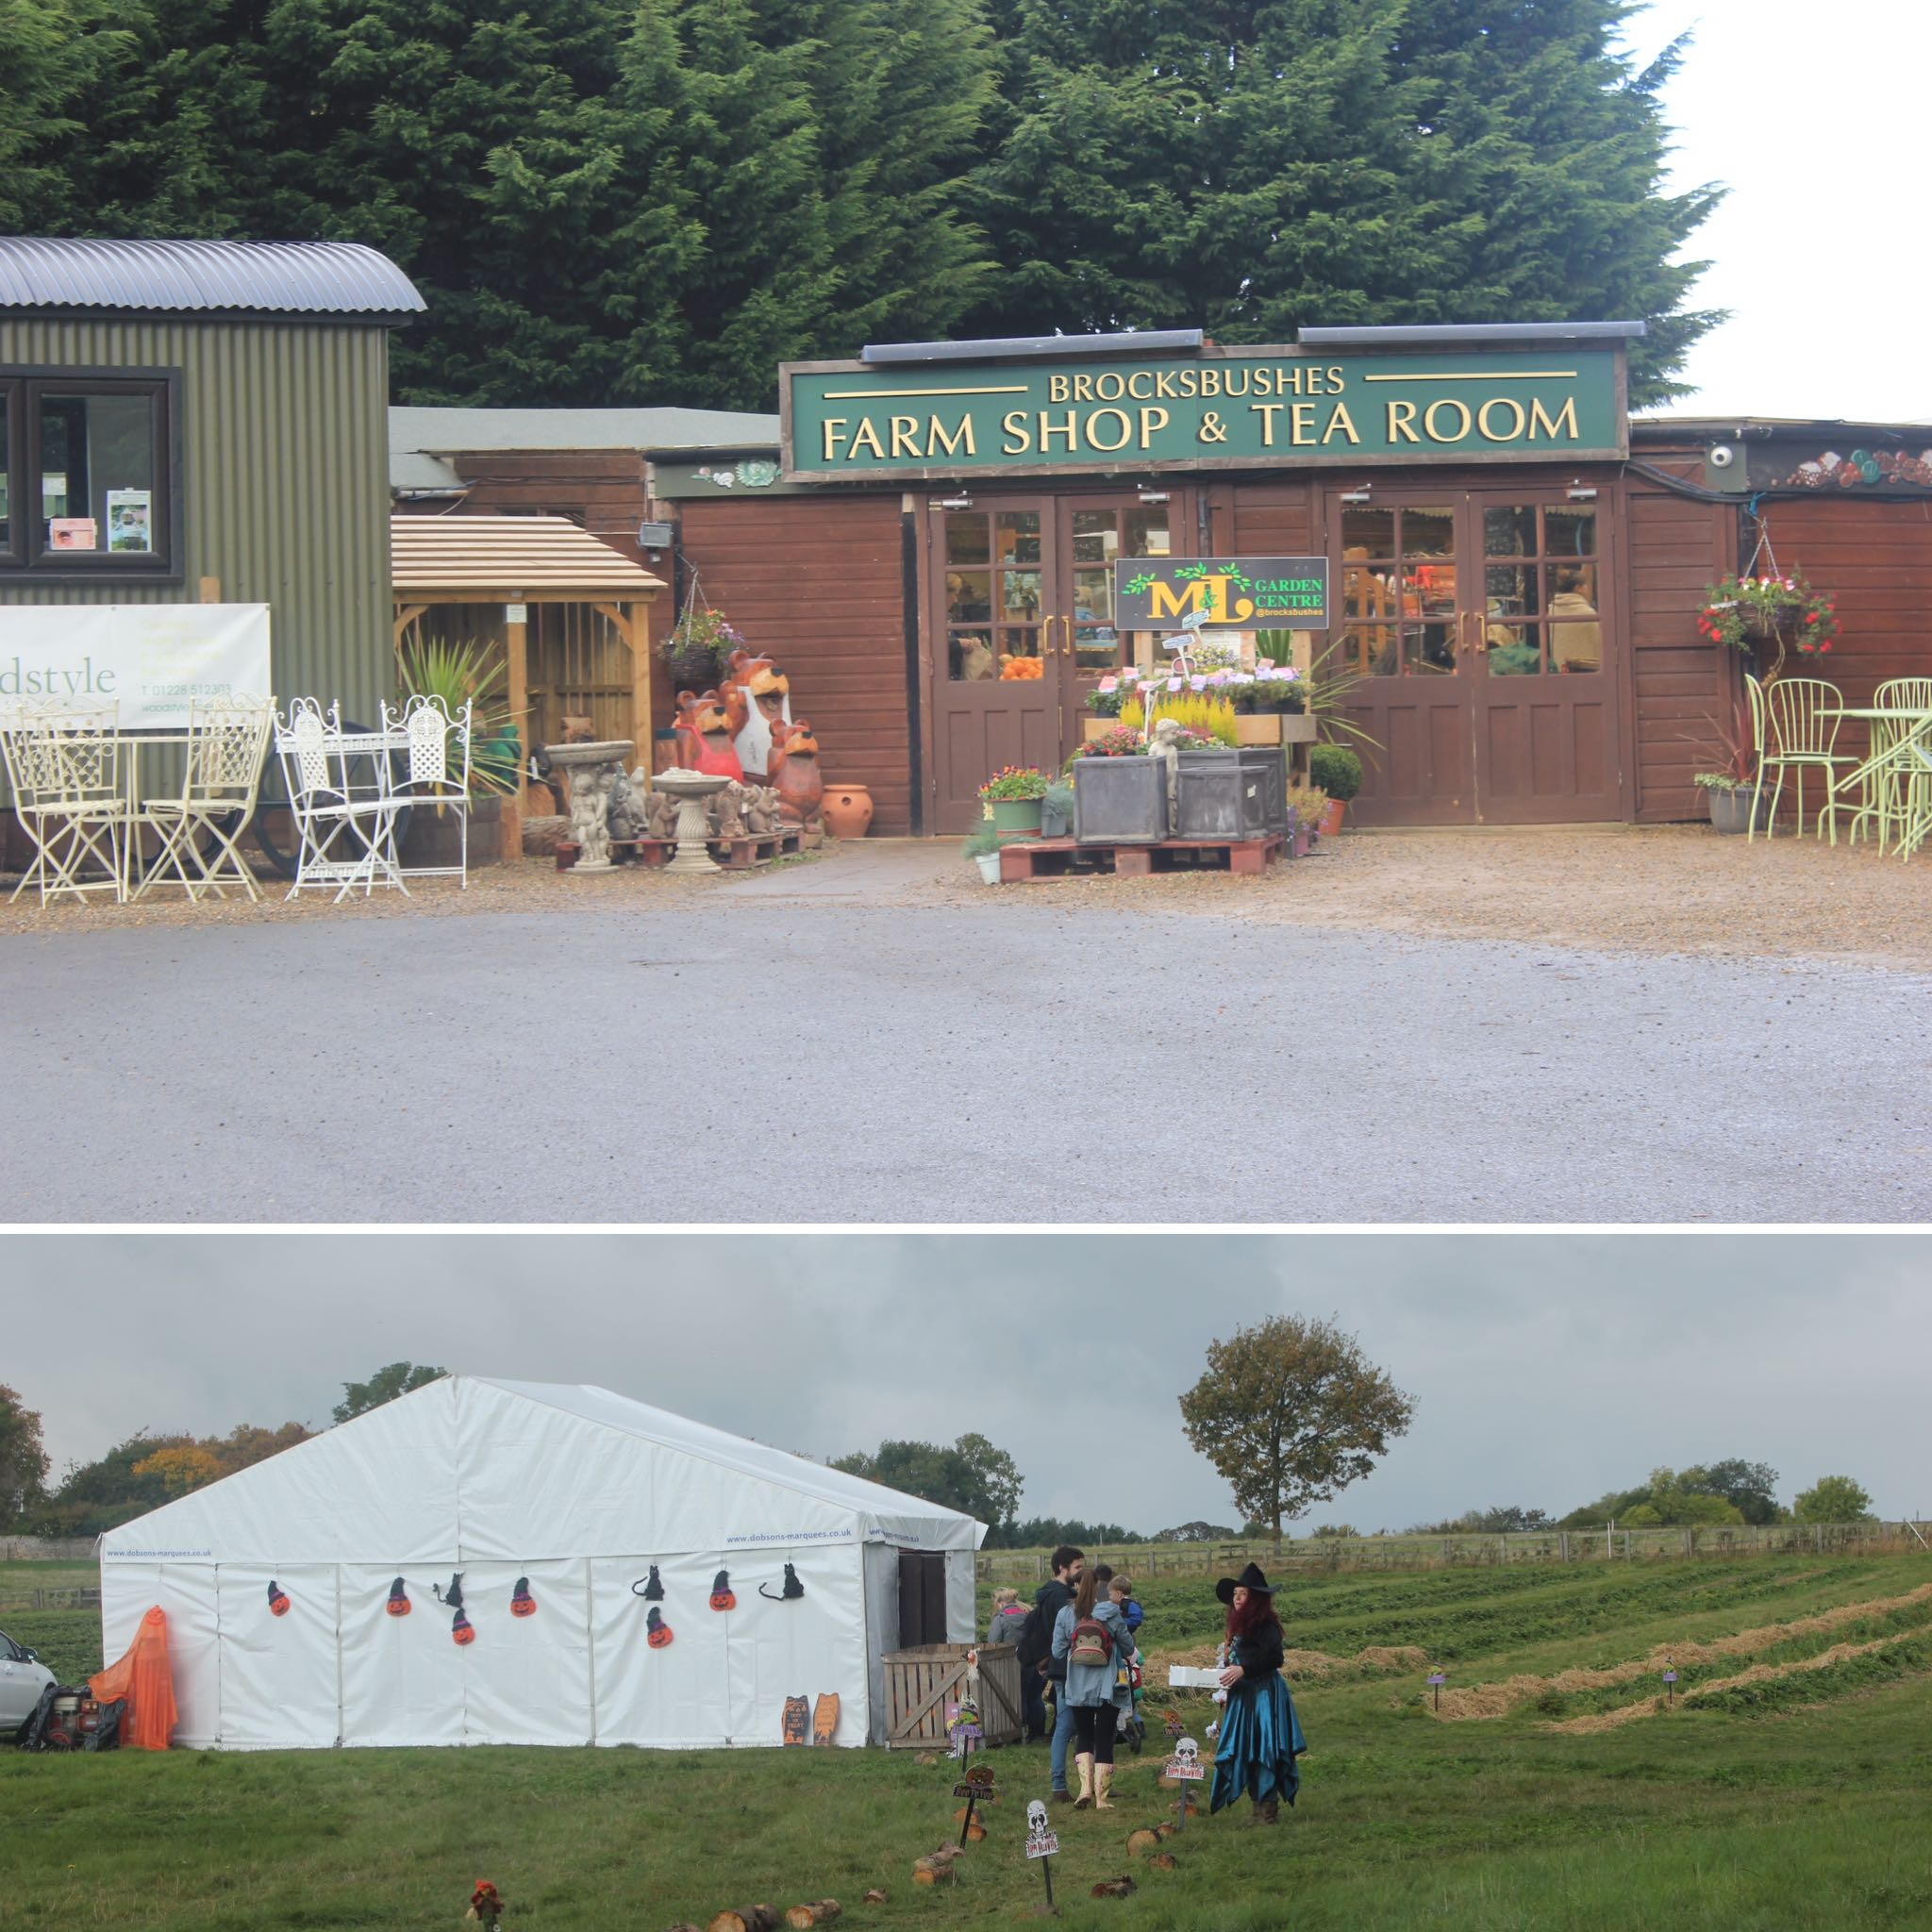 Brocksbushes farm shop and tea room Halloween 2016 Northumberland pumpkin patch kids events baby toddler. Picture of ourside the shop and an marquee